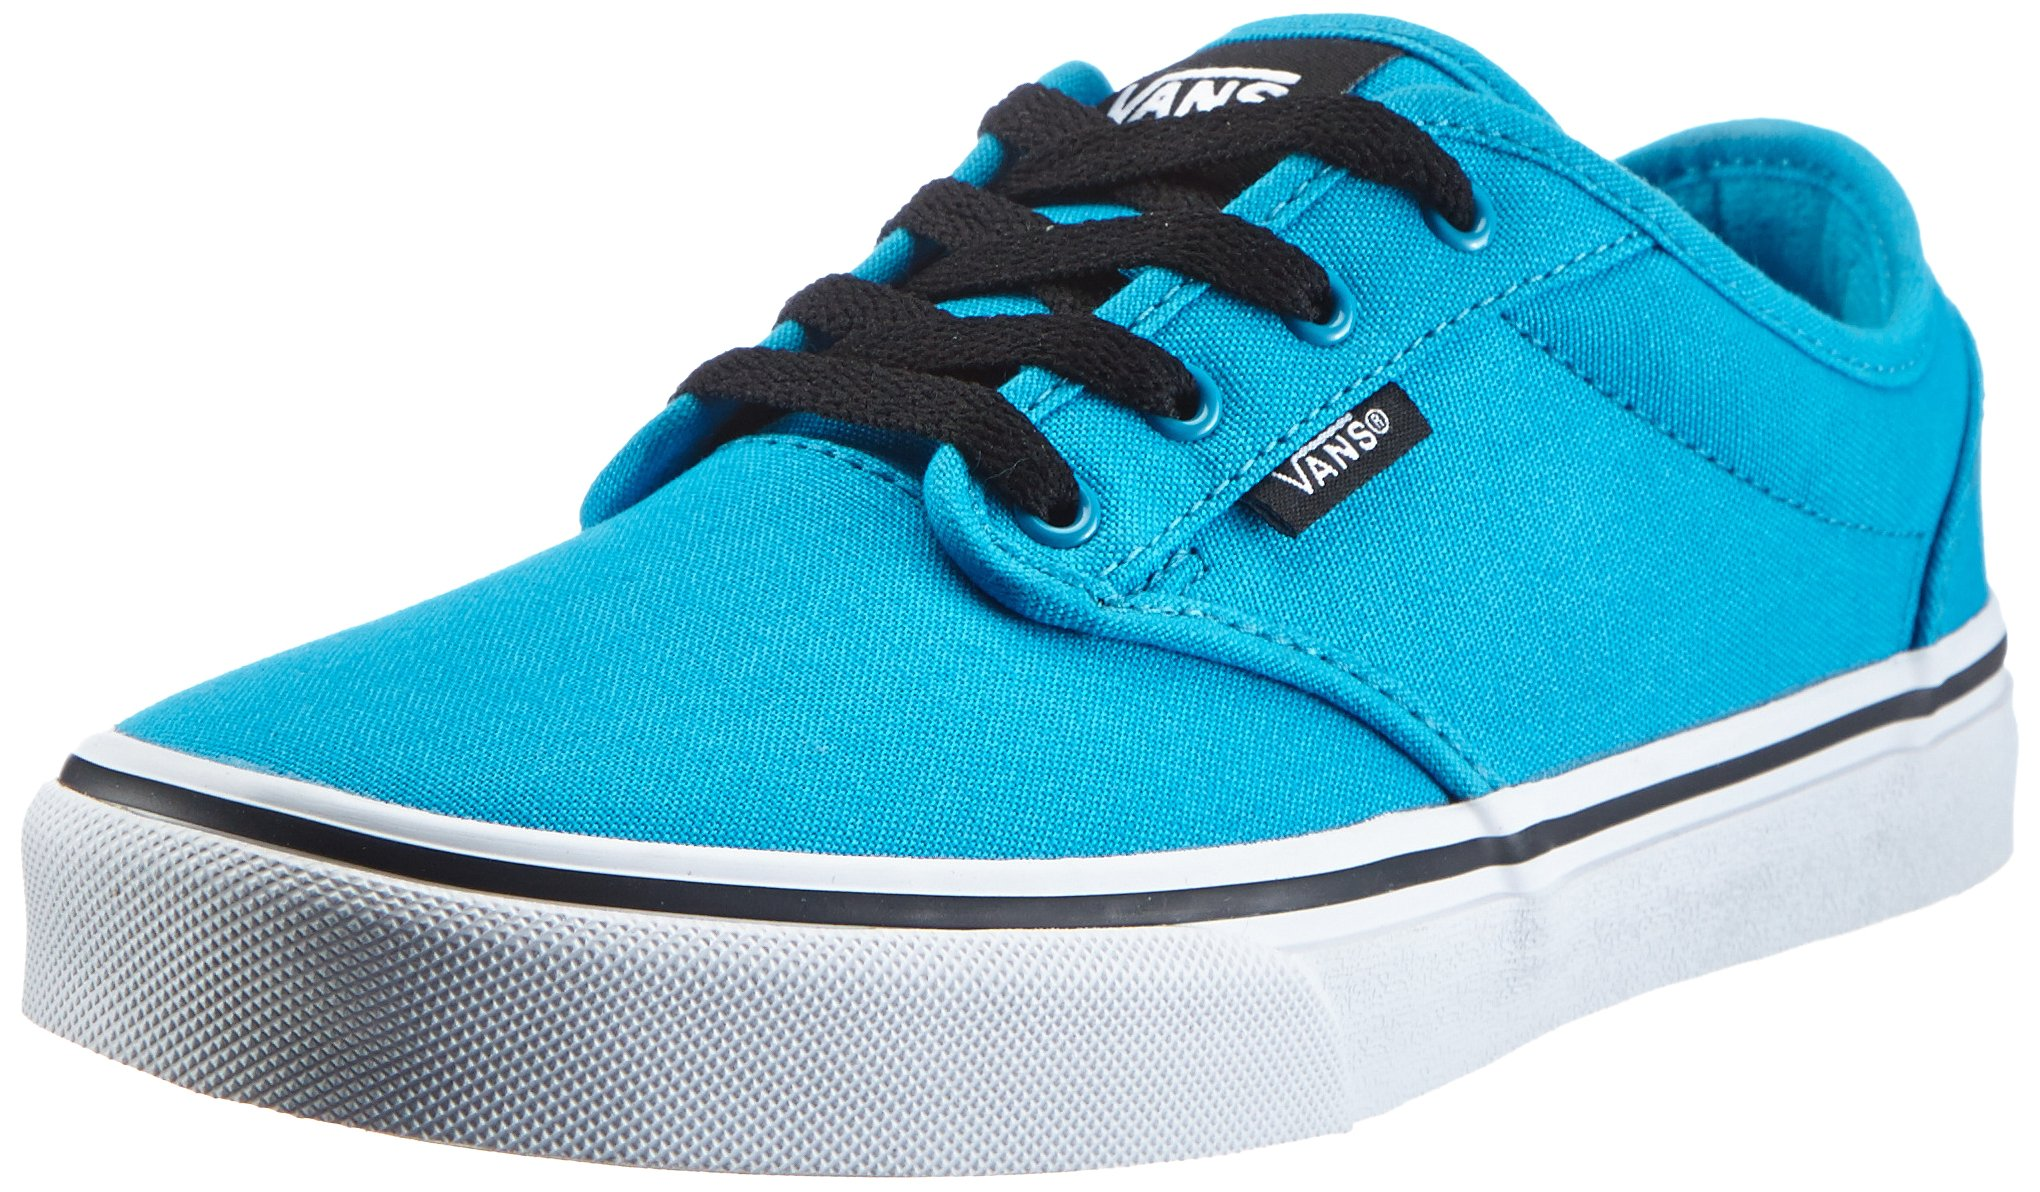 Vans Boy's Atwood (Canvas) Hawaiian Ocean/White Skateboarding Shoes (Kids US 11)